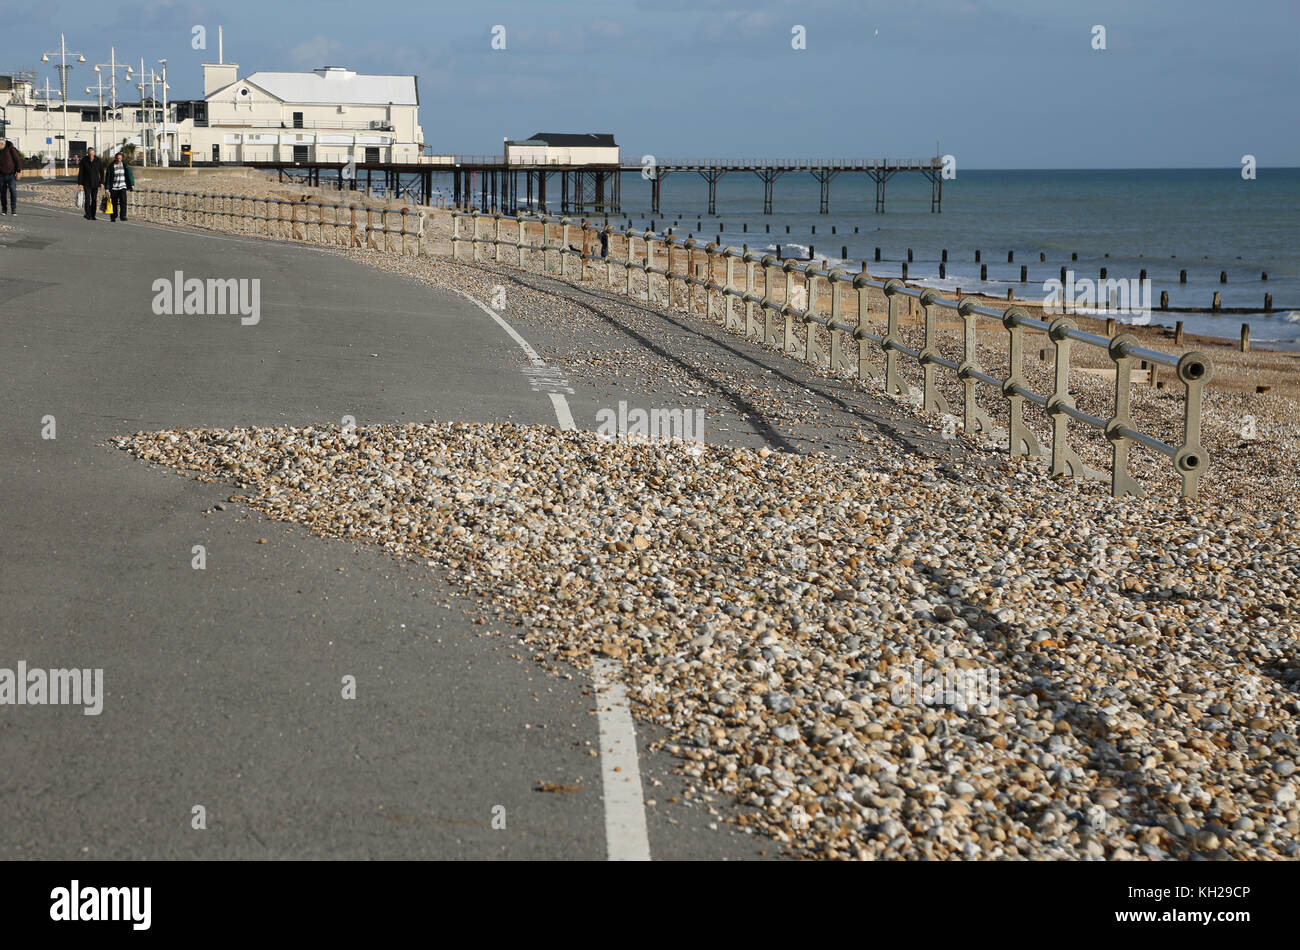 shingle overflows onto the seafront promenade in Bognor Regis, Sussex, UK, following stormy winter weather. Shows - Stock Image